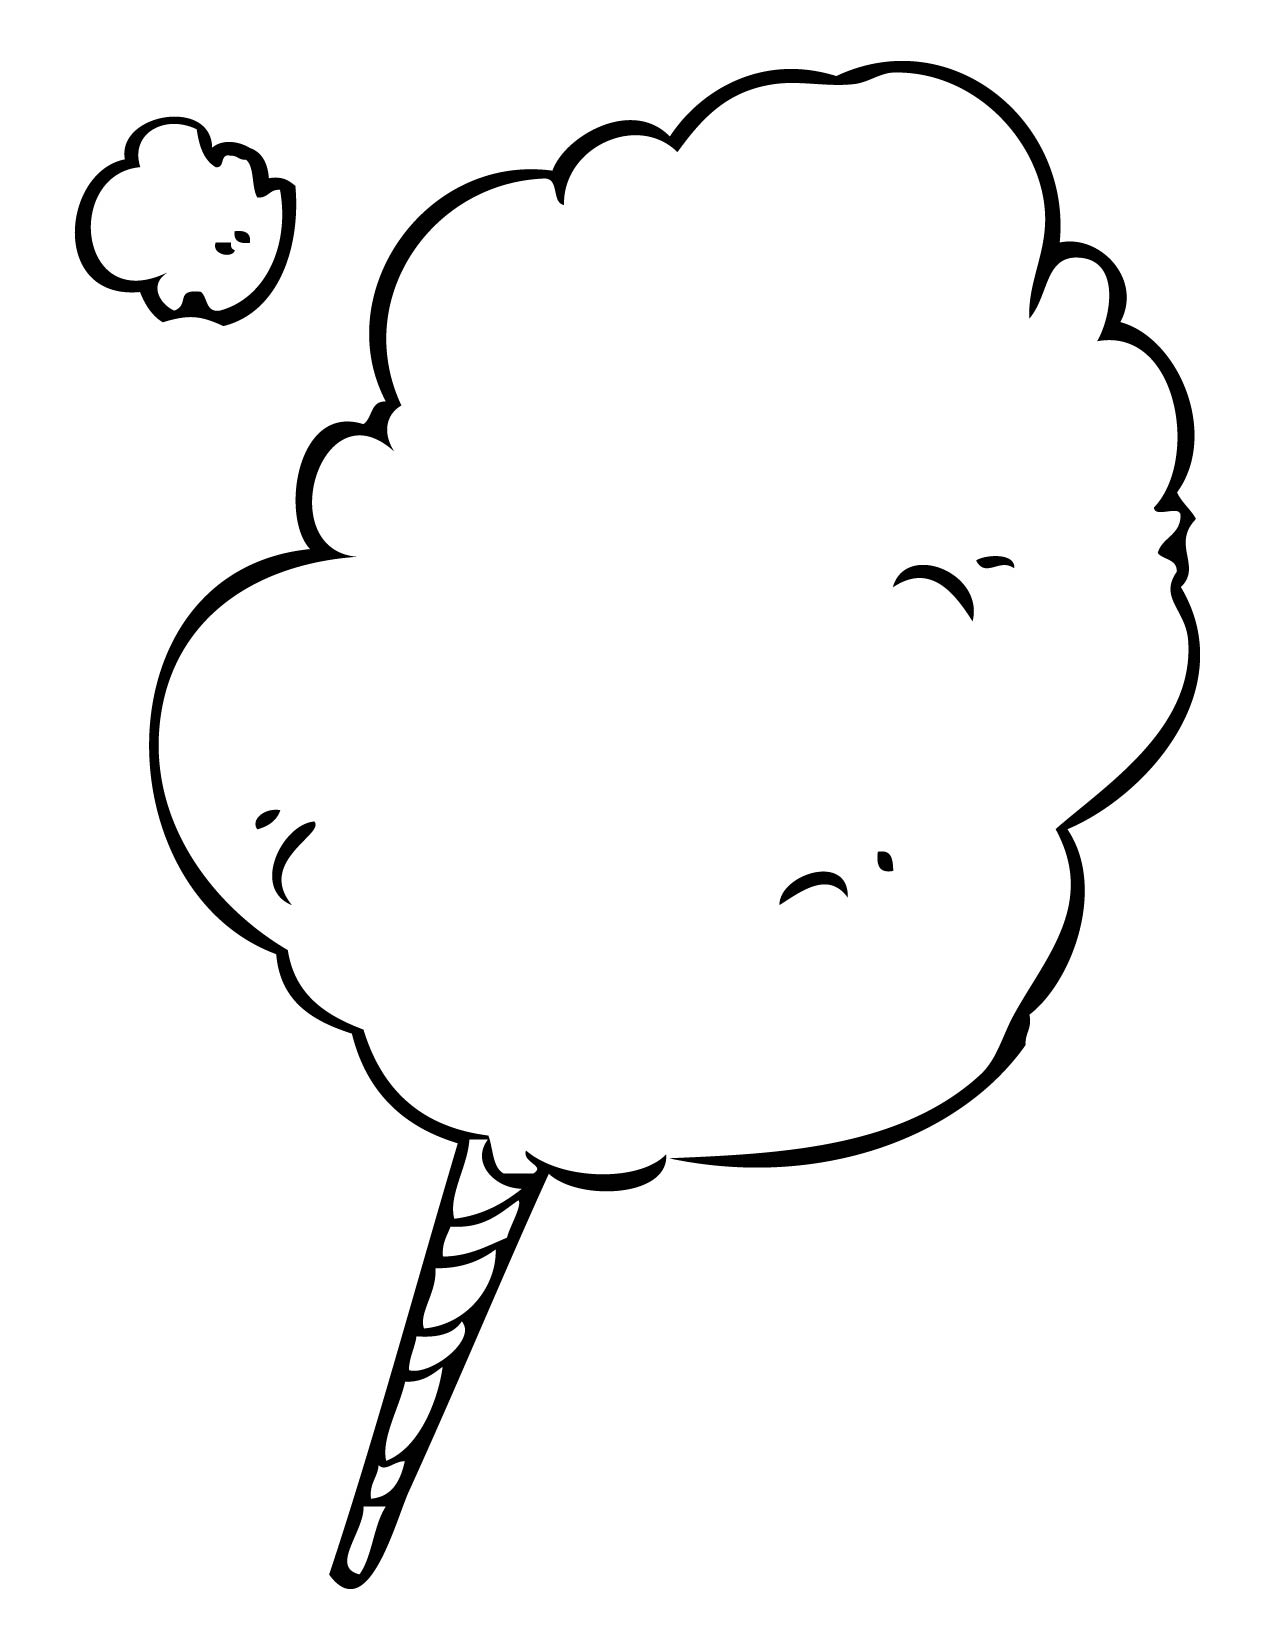 cotton candy coloring page cotton candy pictures clipart best